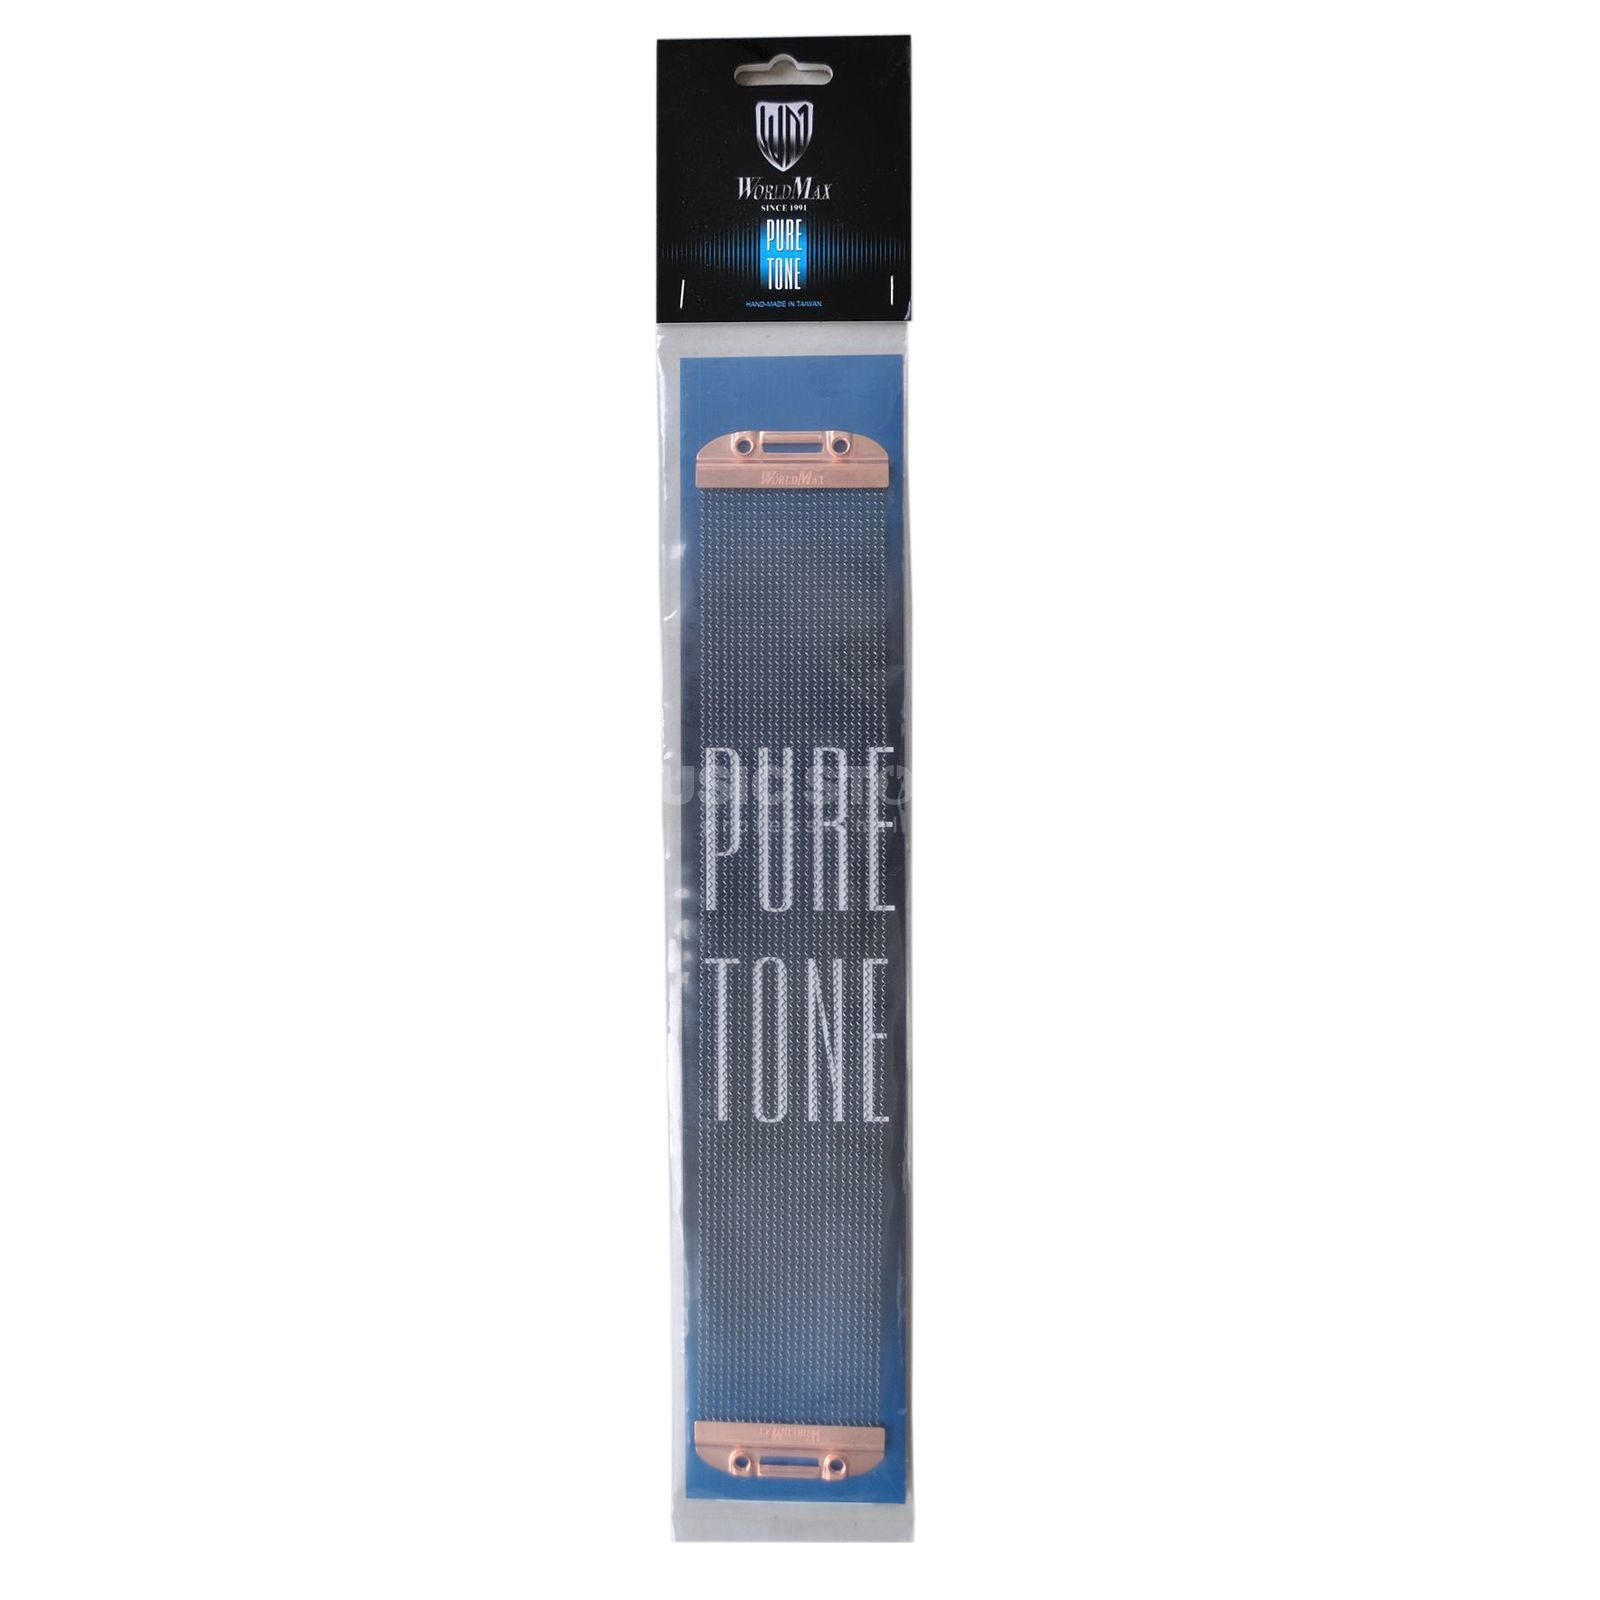 "Worldmax Pure Tone Snare Wires 14"", 25 Wires, German Wire Produktbillede"